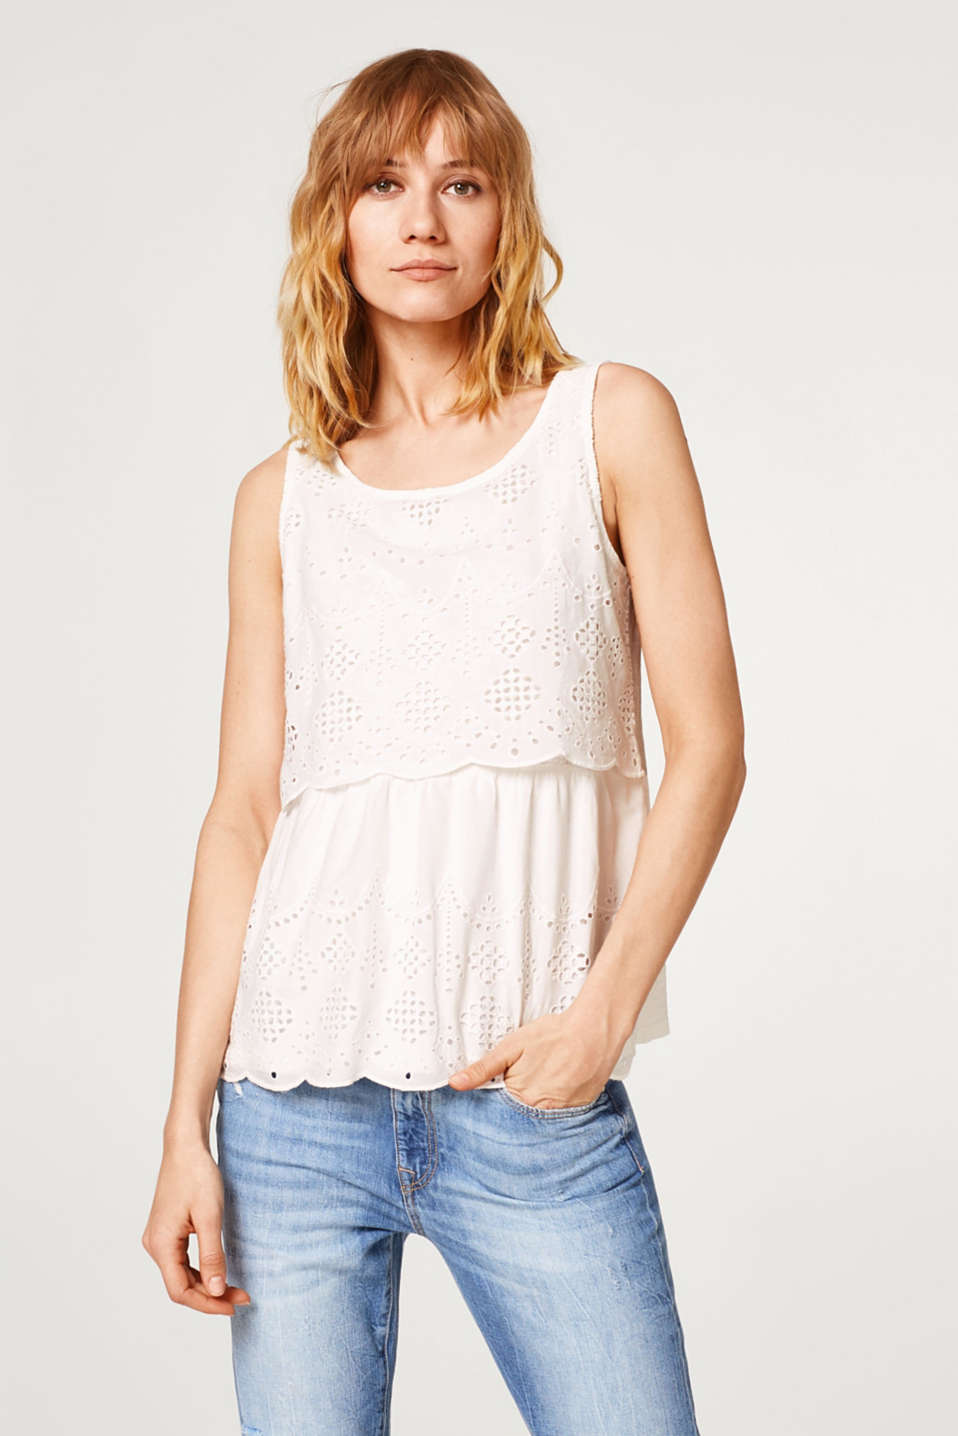 Esprit - Blouse top with broderie anglaise, 100% cotton